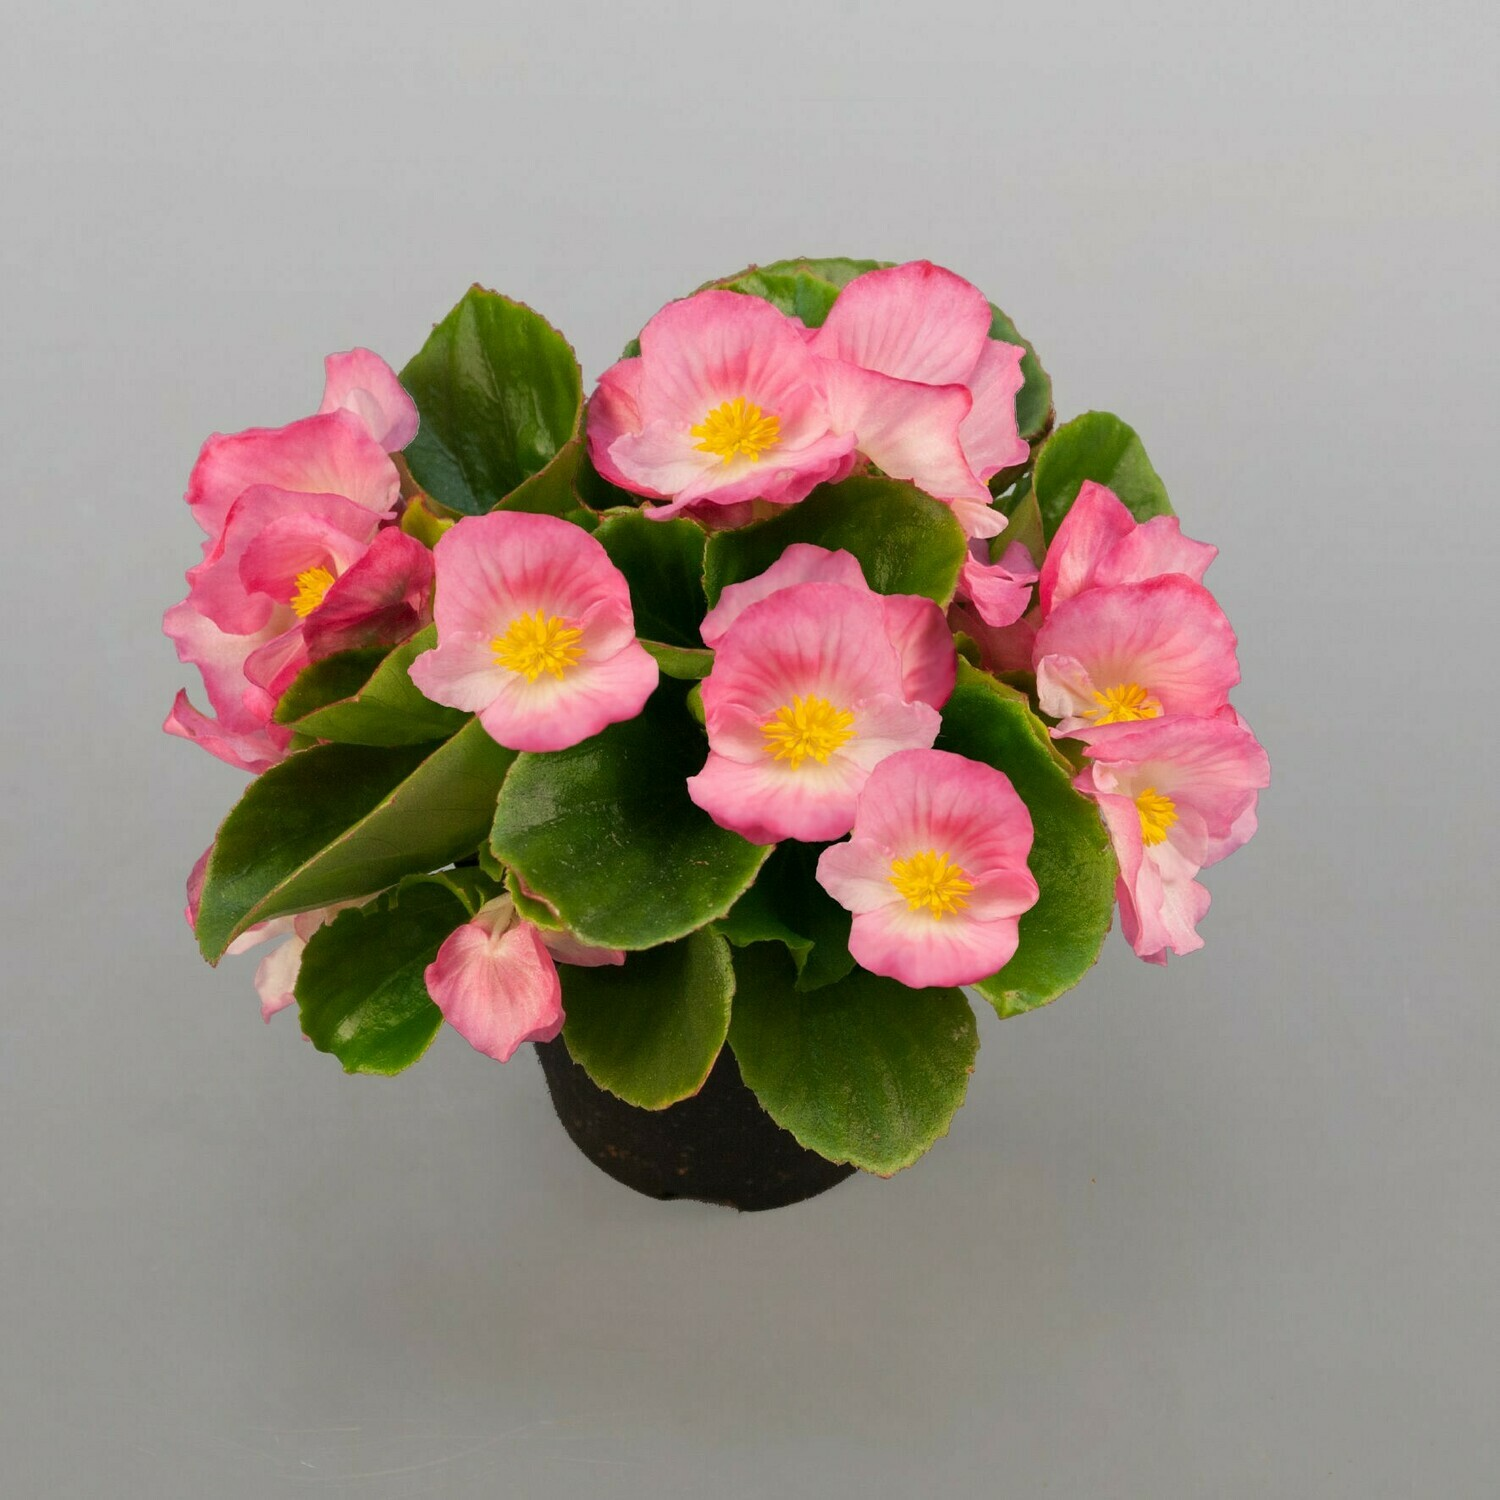 Begonia (Plant) - Nature by Marc Beyrouthy